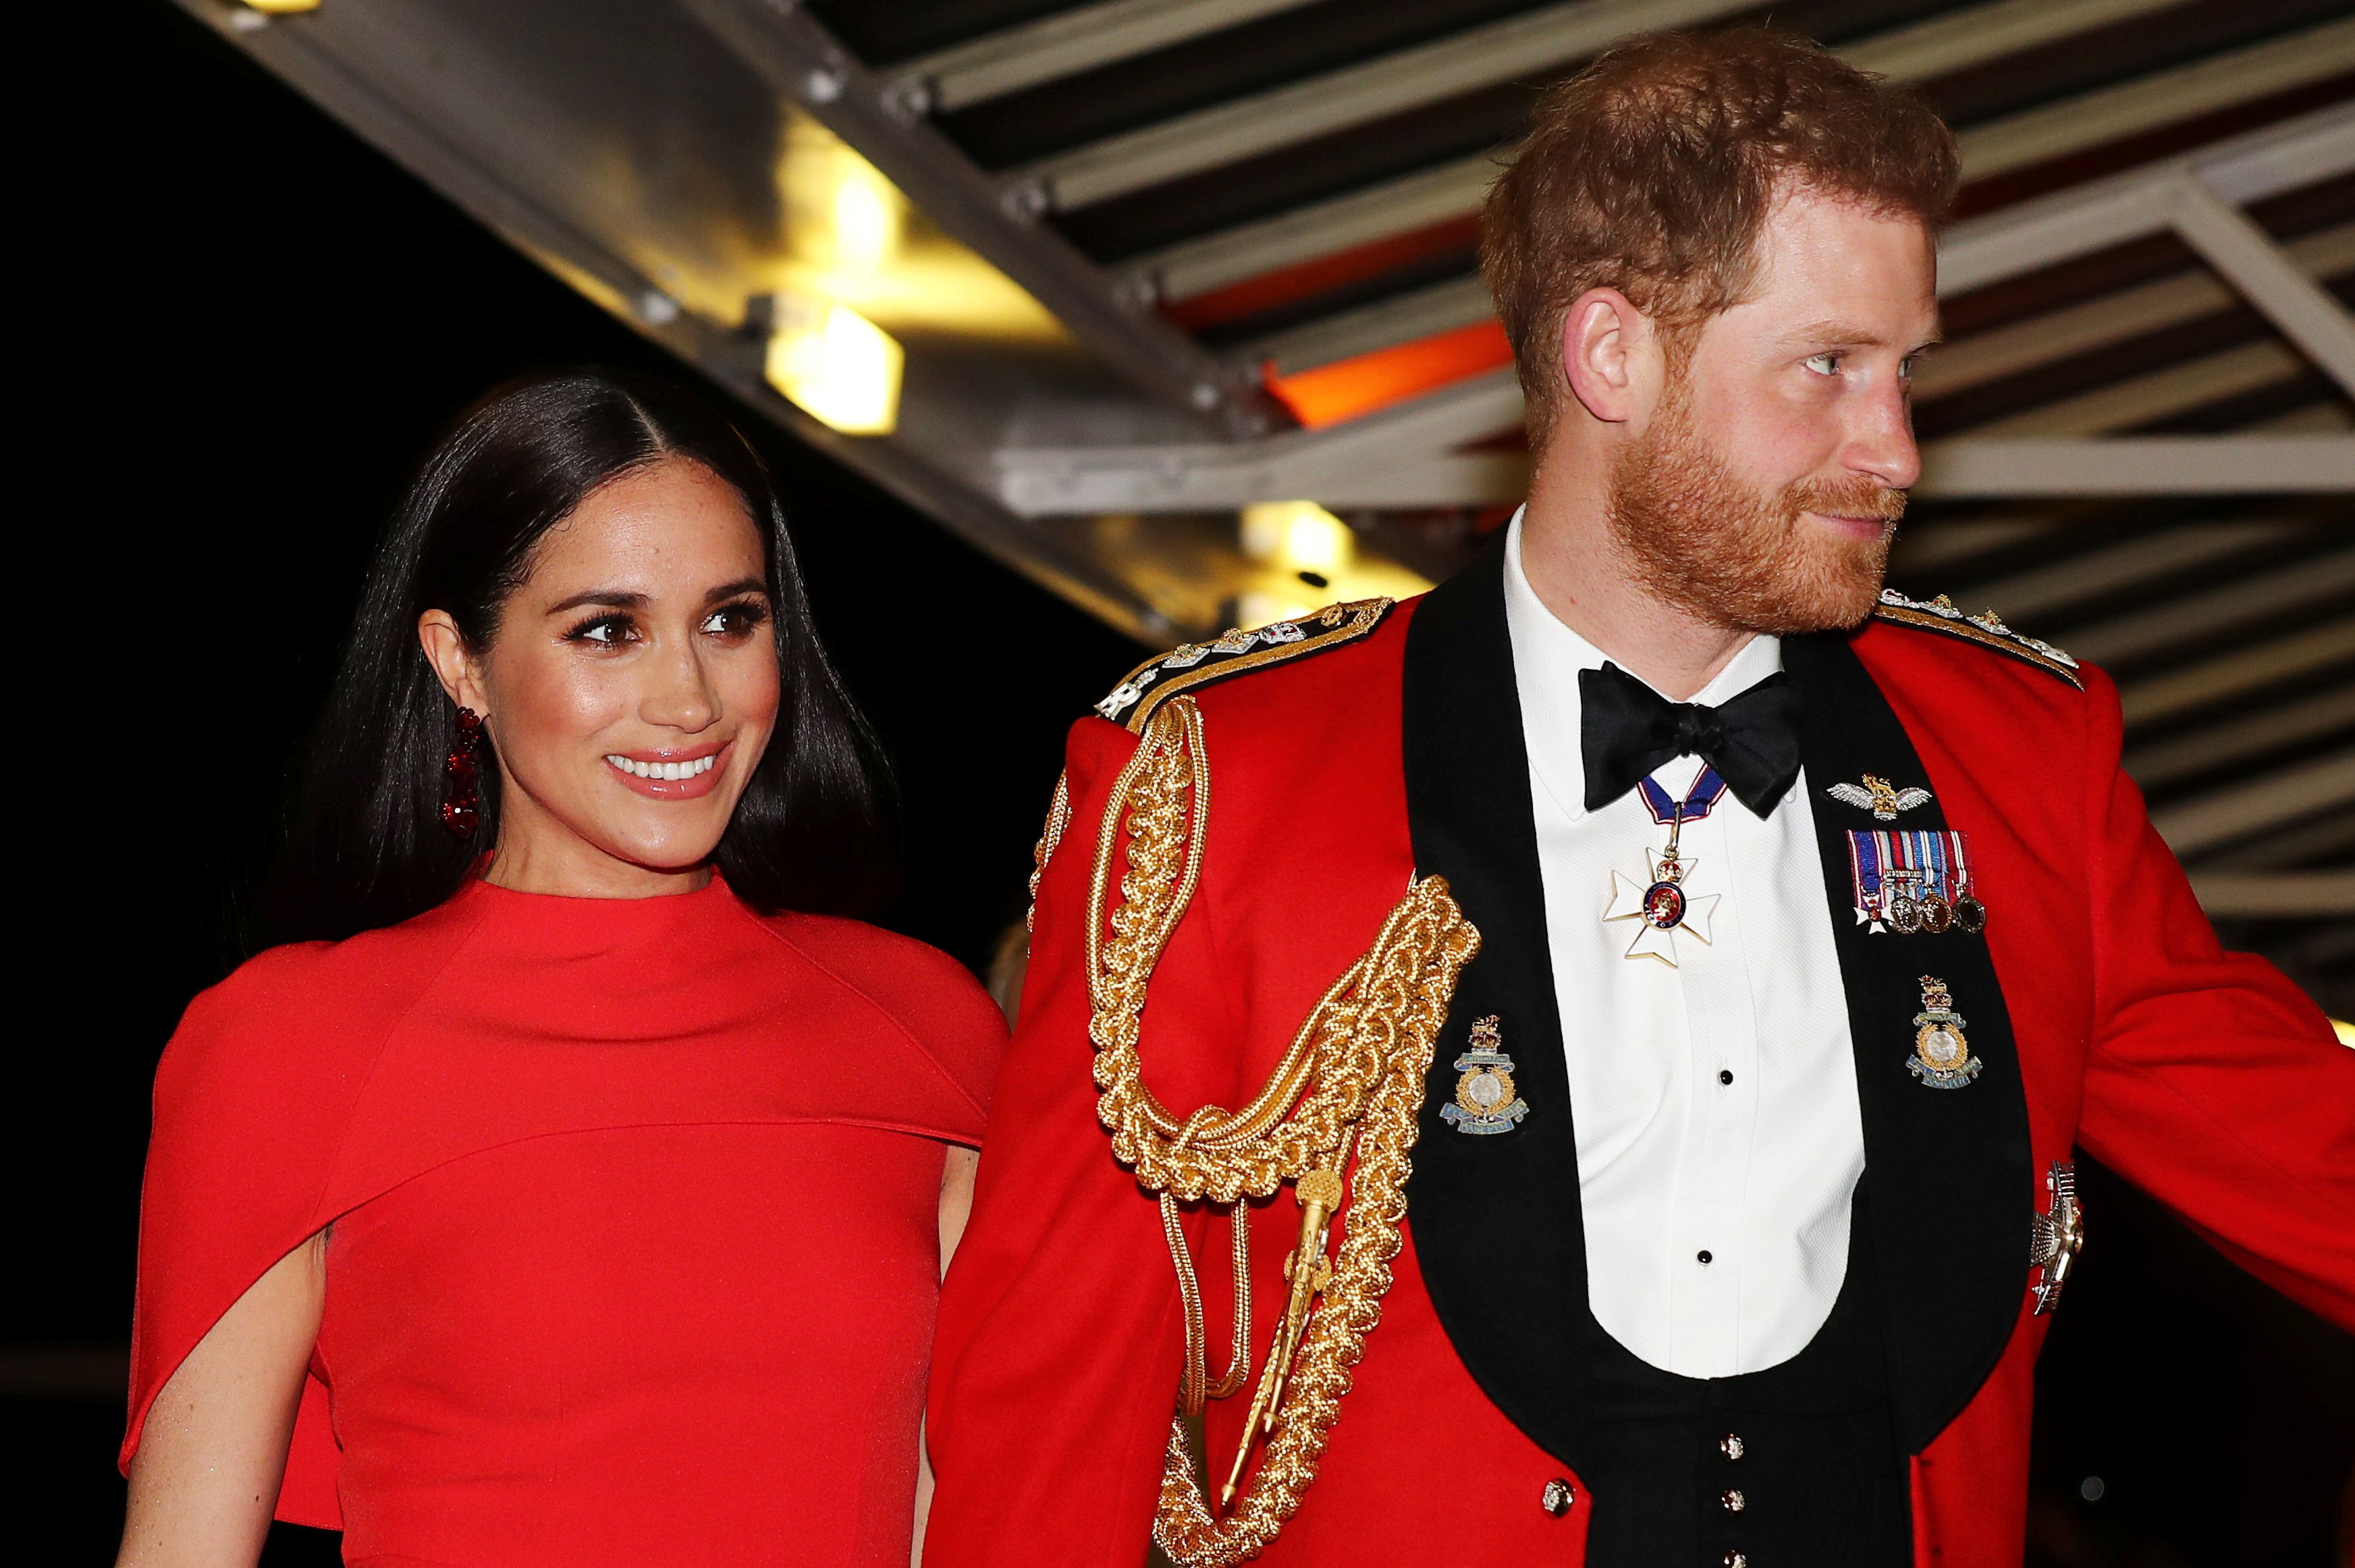 Meghan Markle and Prince Harry photographed candidly